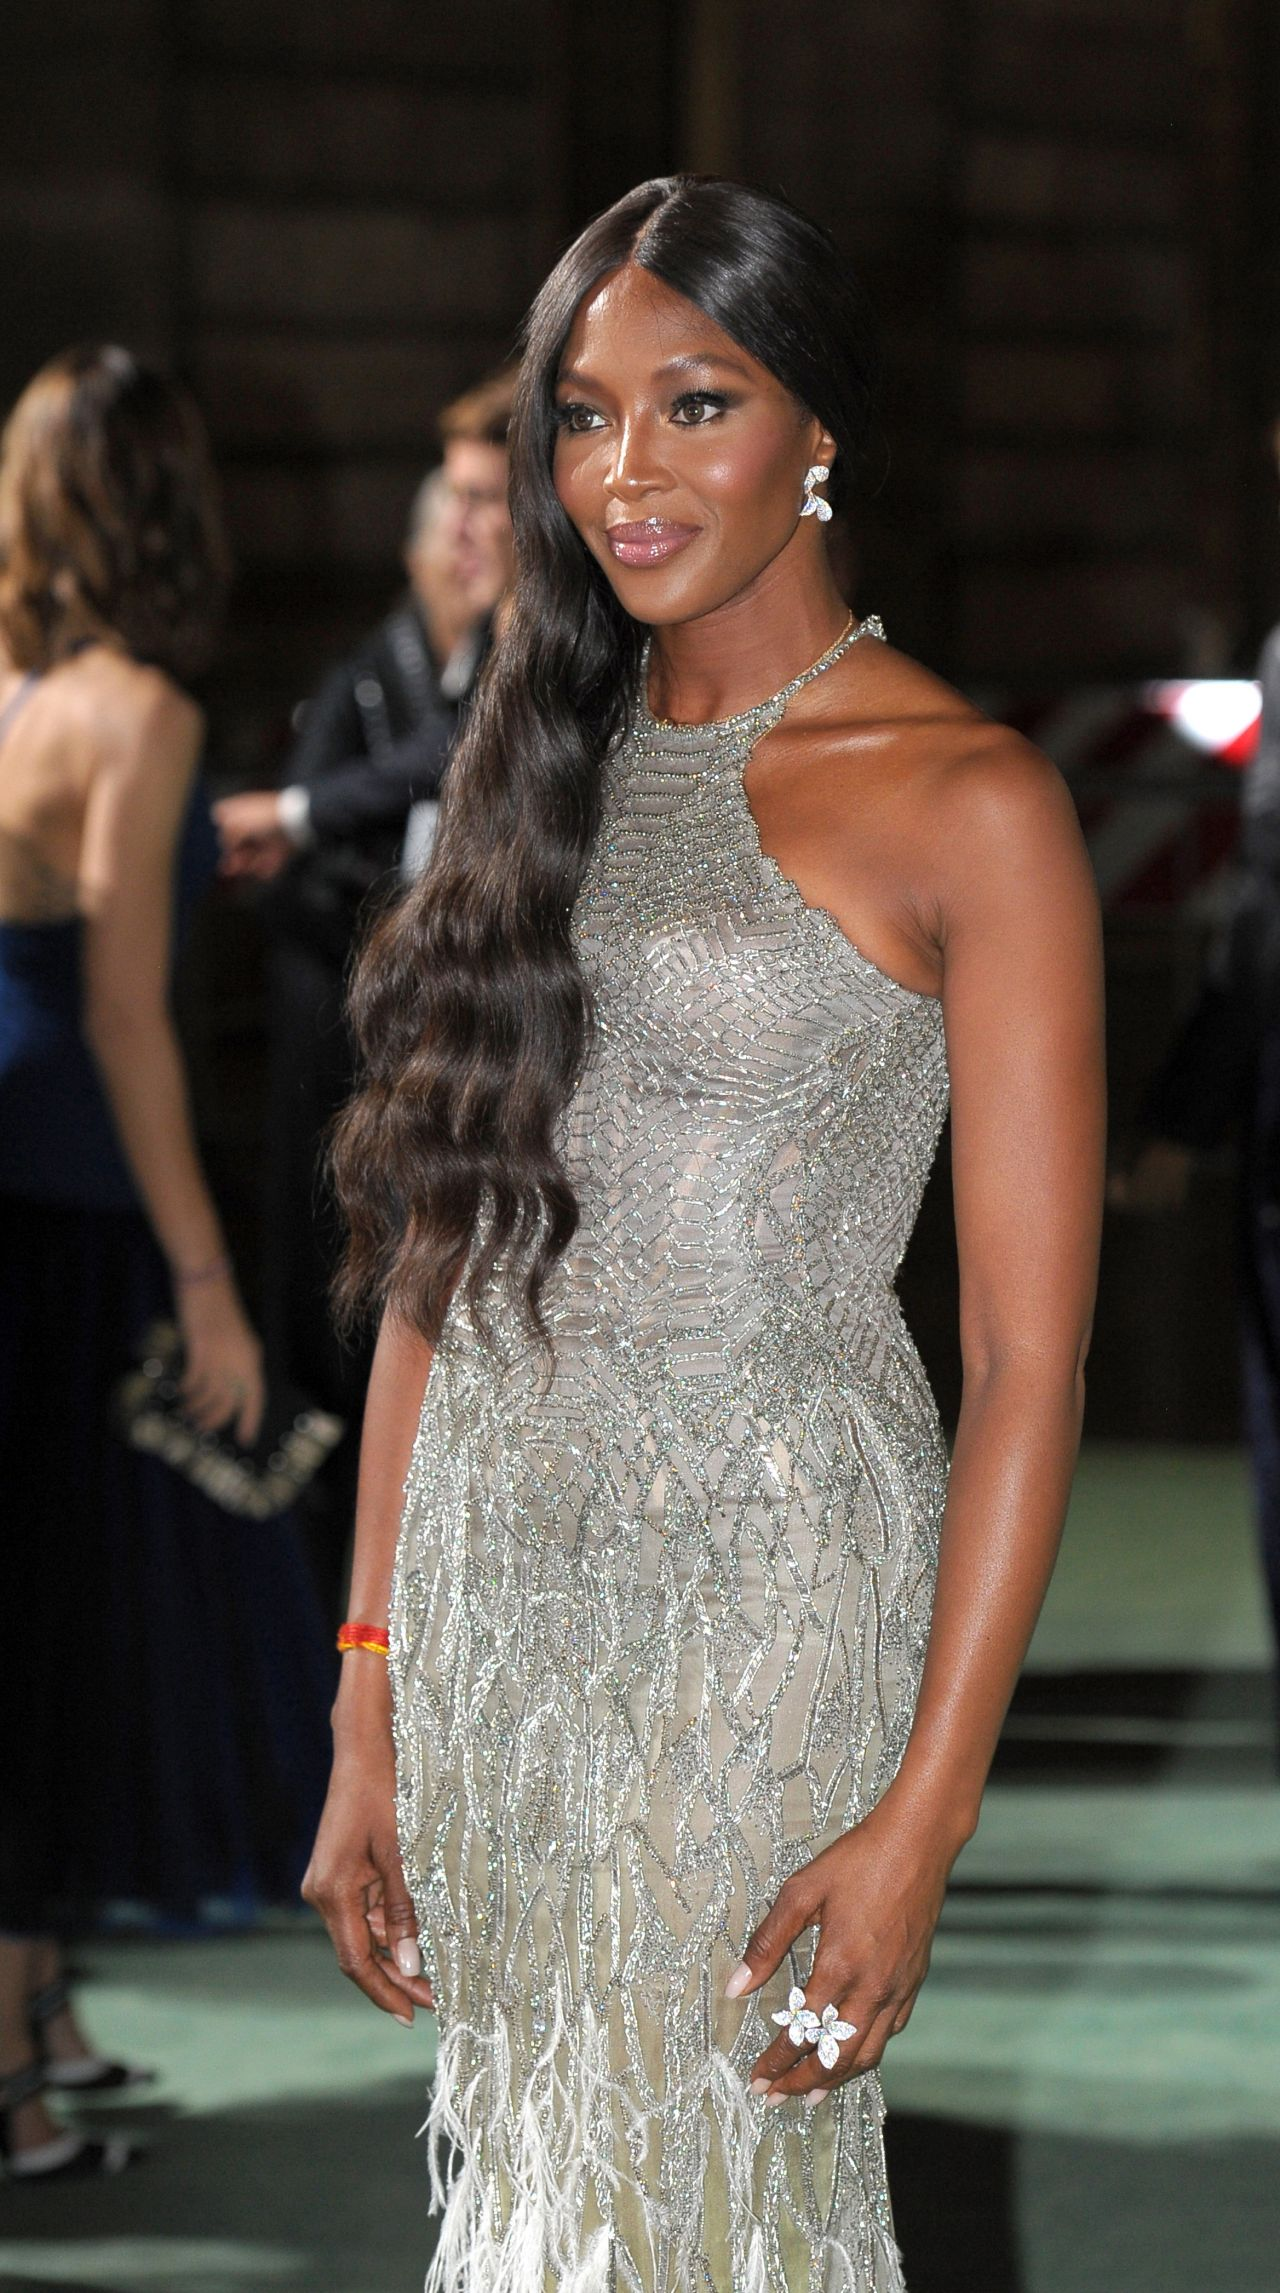 Naomi Campbell Green Carpet Fashion Awards Italia 2017